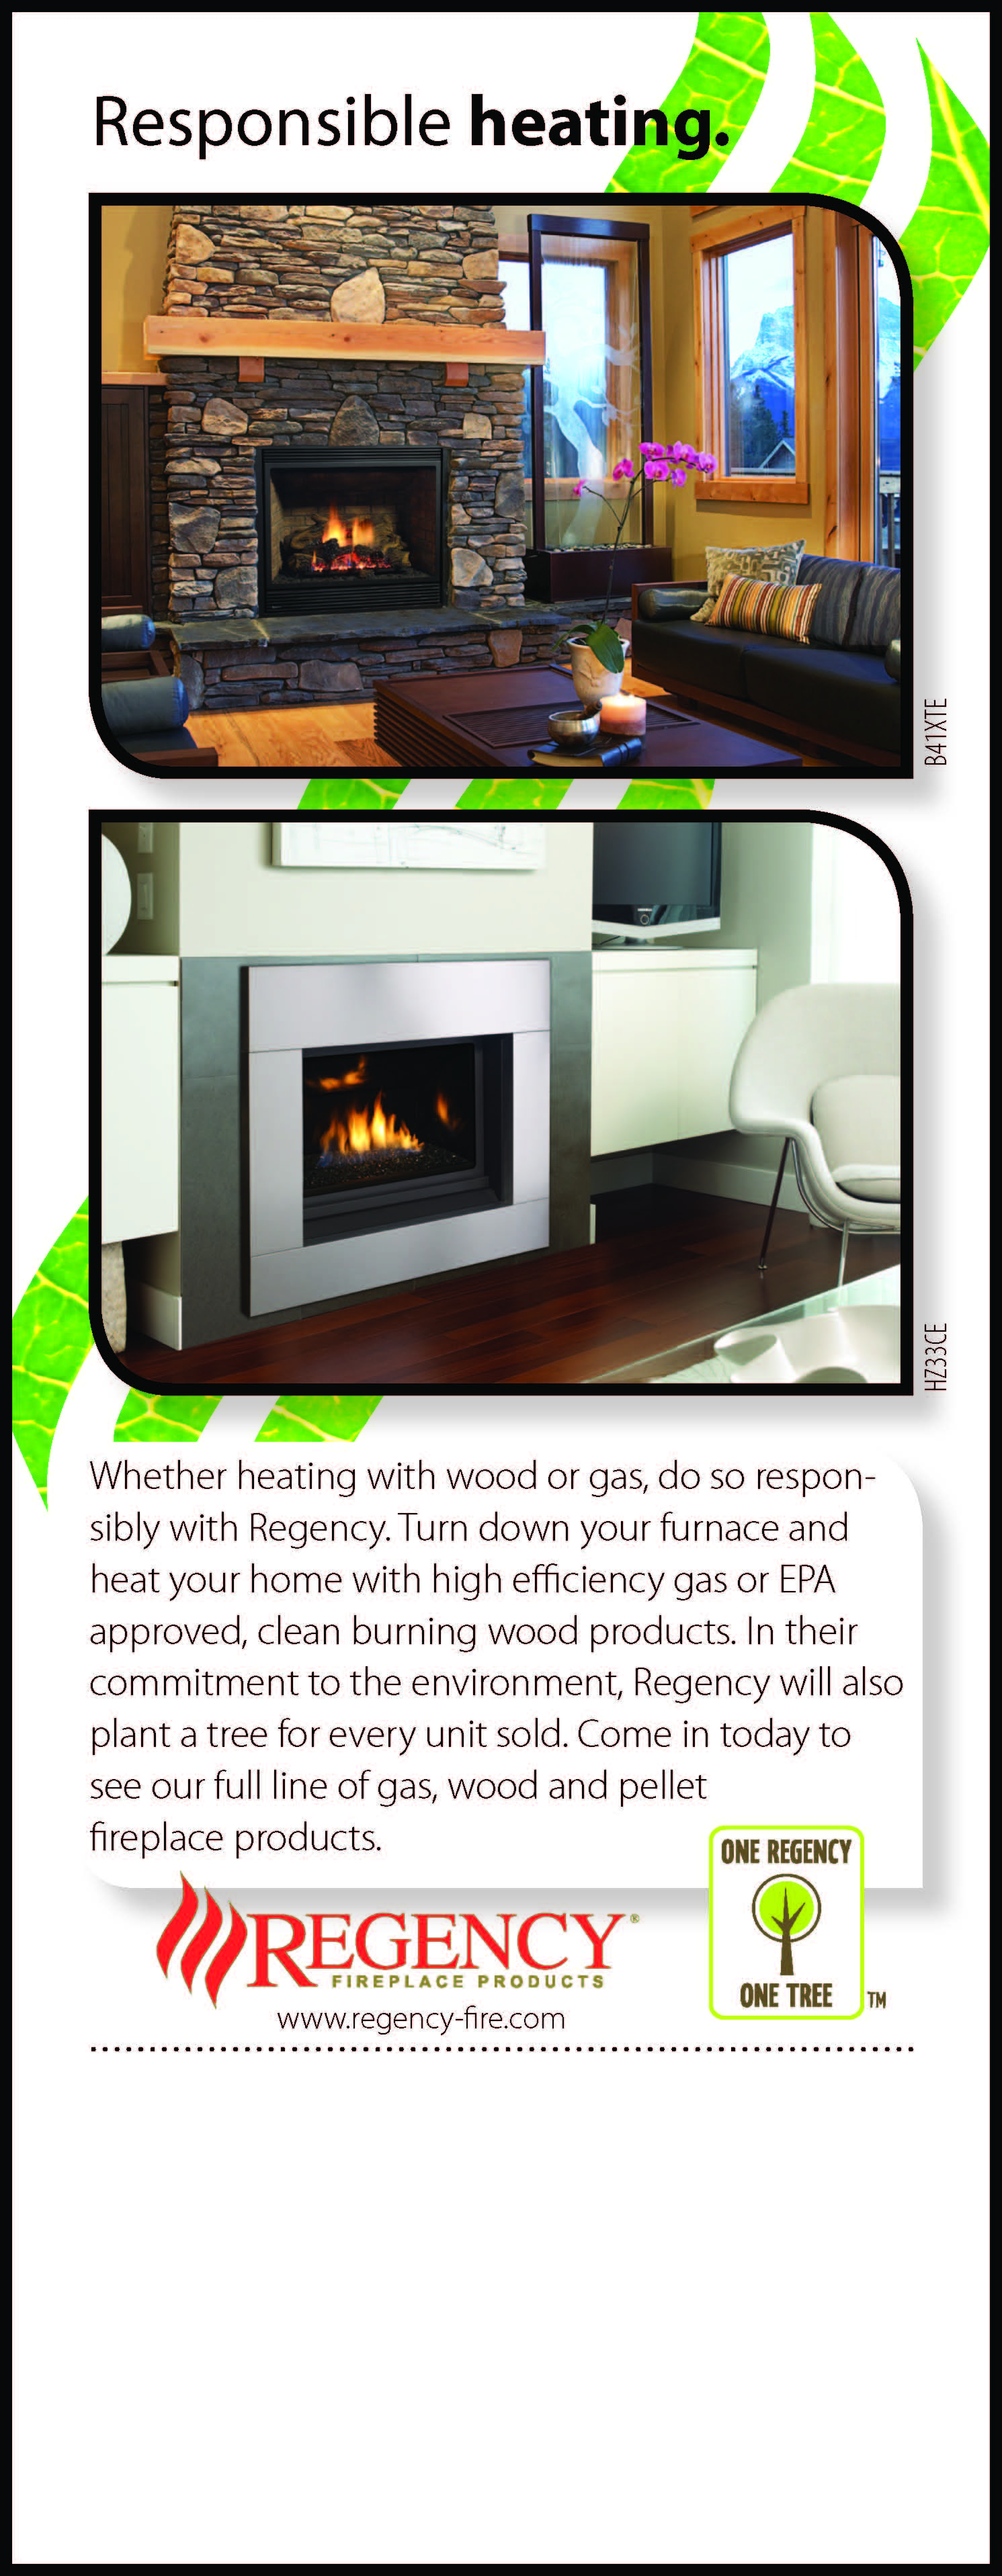 Responsible Heating Regency Fireplace Products